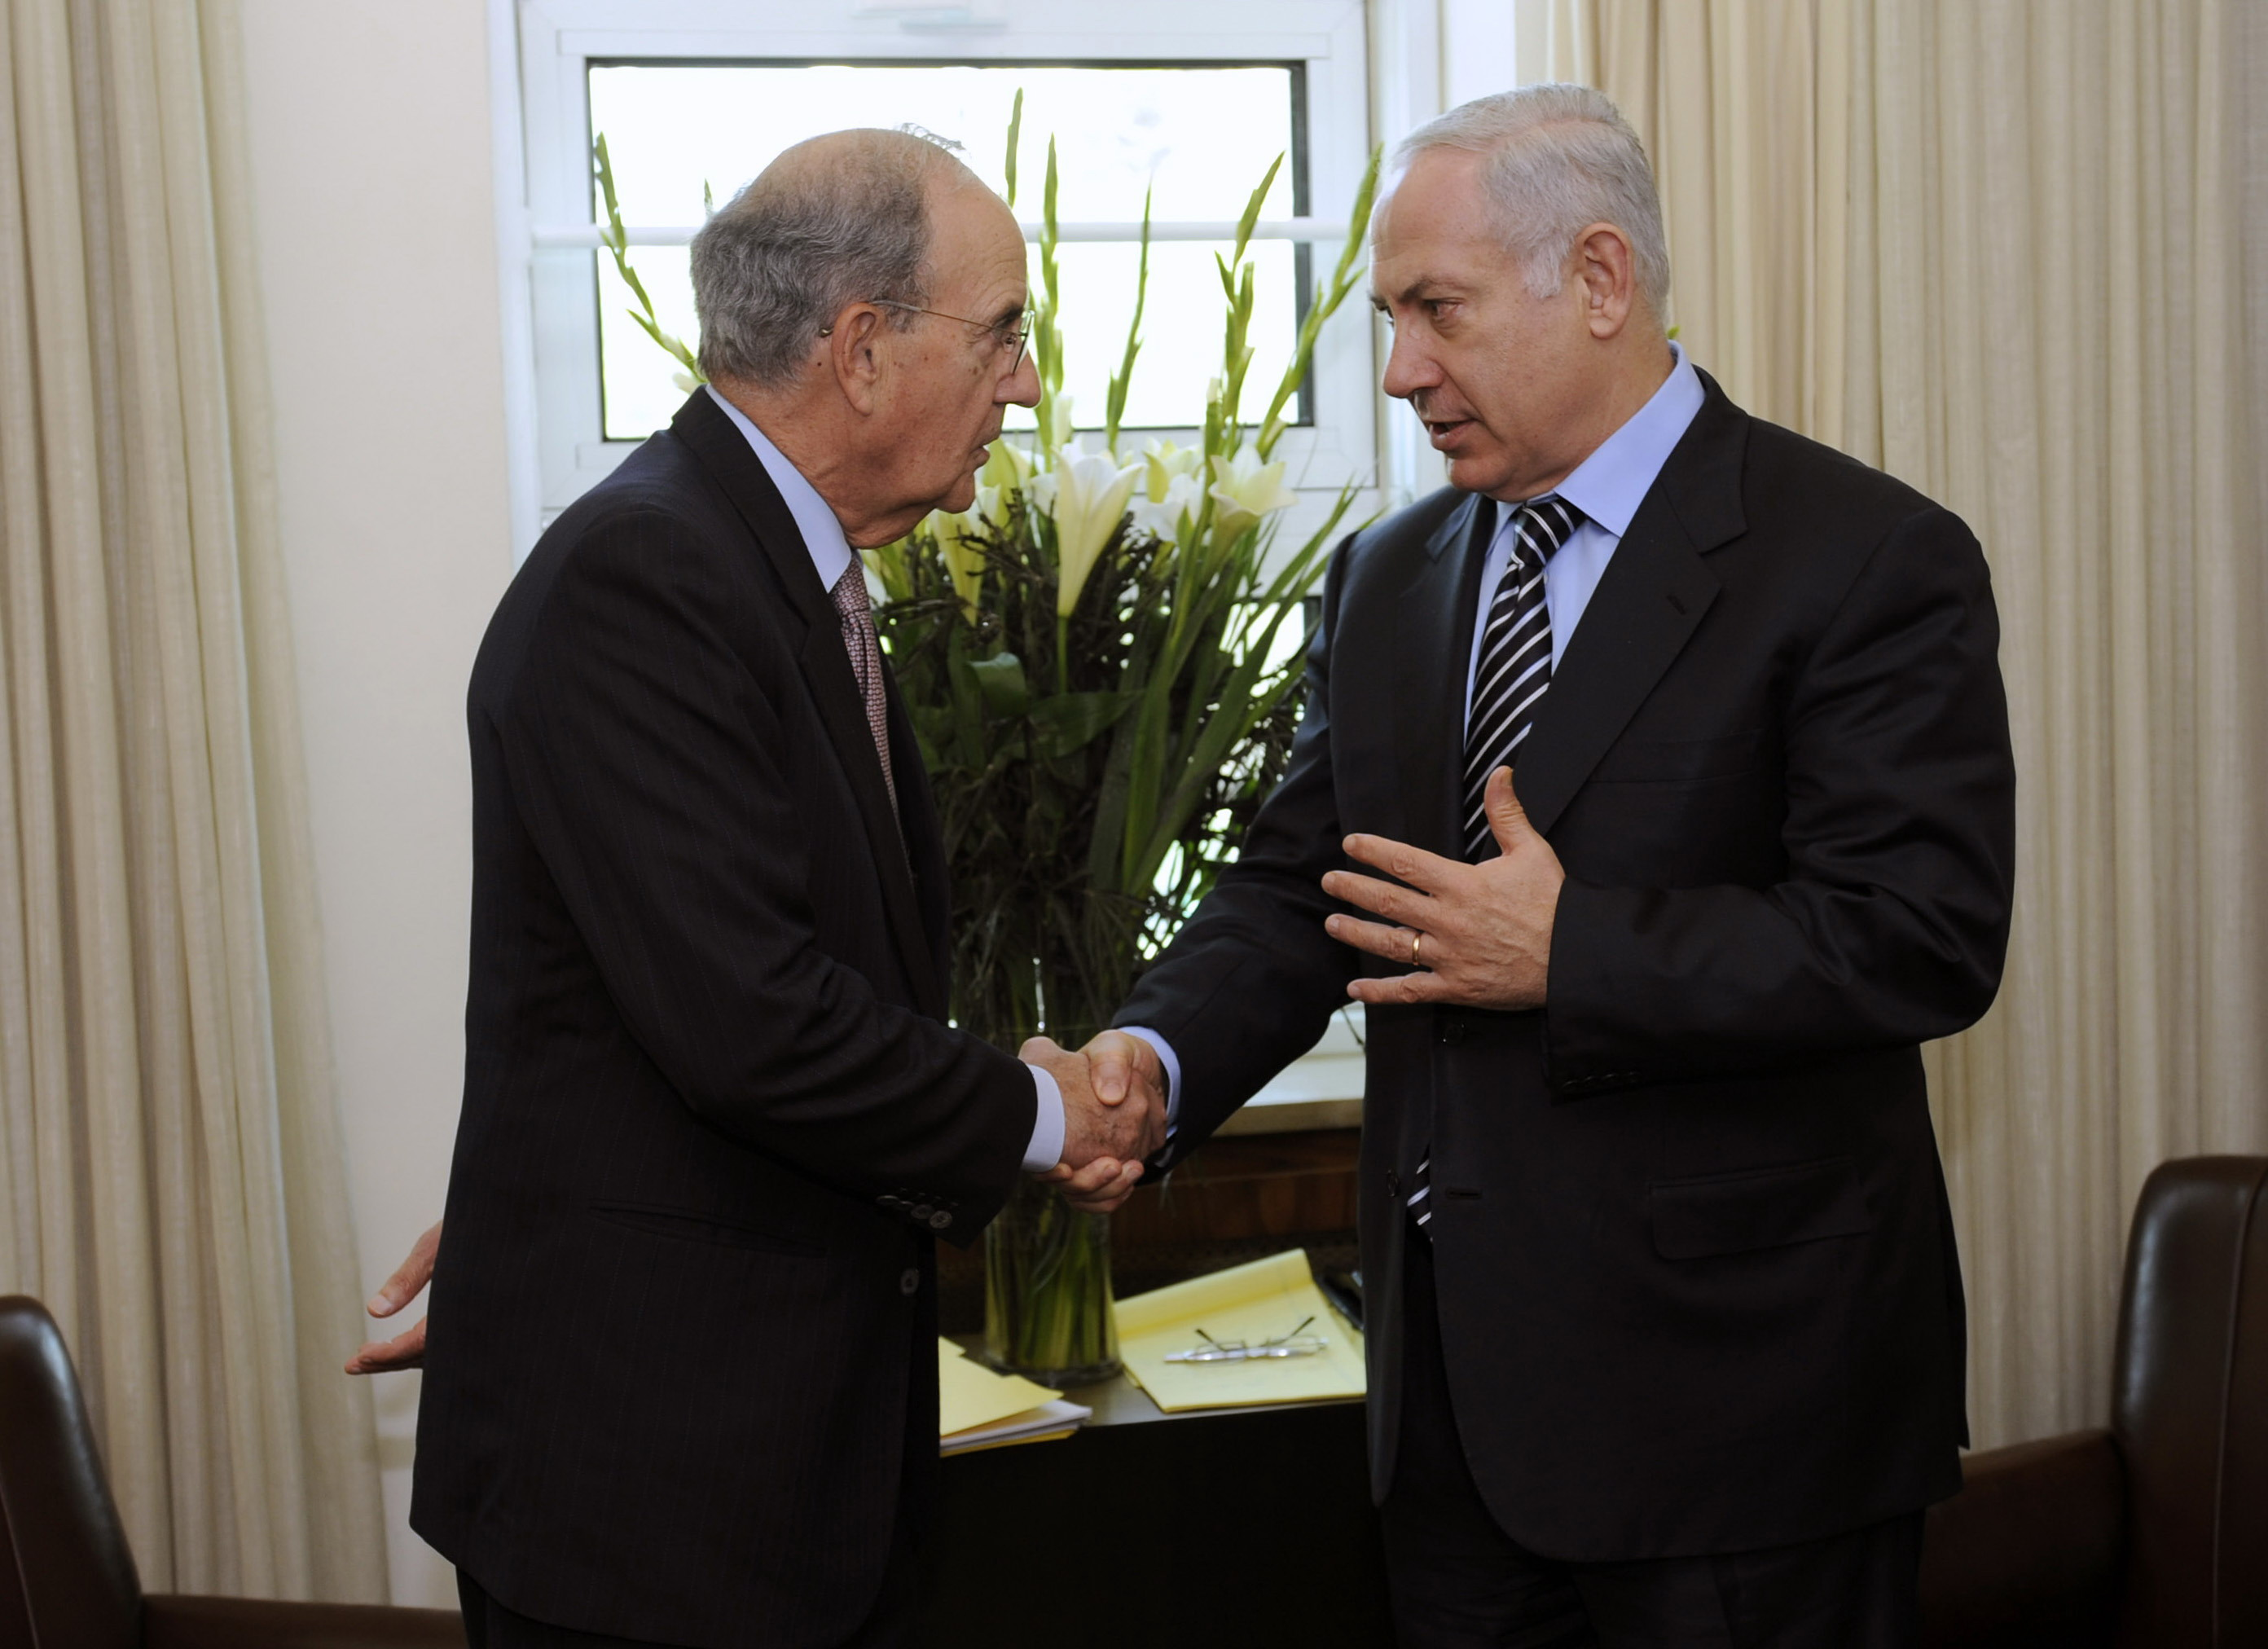 In this photo released by the U.S. Embassy in Tel Aviv, Israeli Prime Minister Benjamin Netanyahu, right, meets with U.S. Mideast envoy George Mitchel...